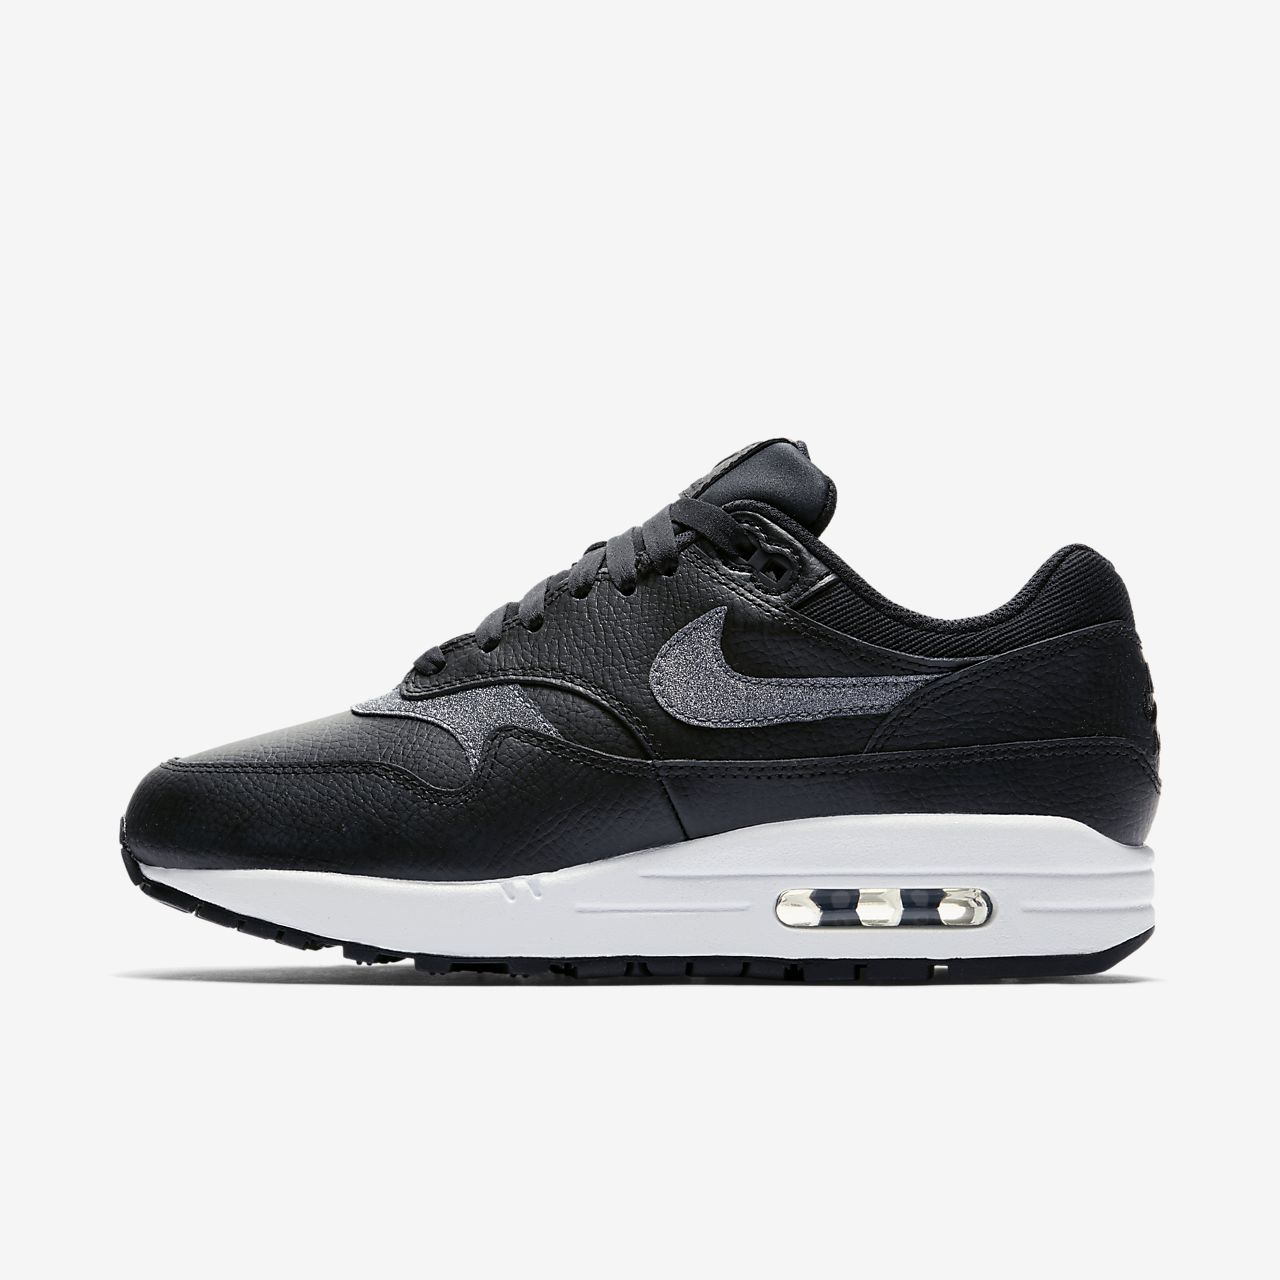 low priced a90c0 55ef7 ... Nike Air Max 1 SE Glitter Women s Shoe